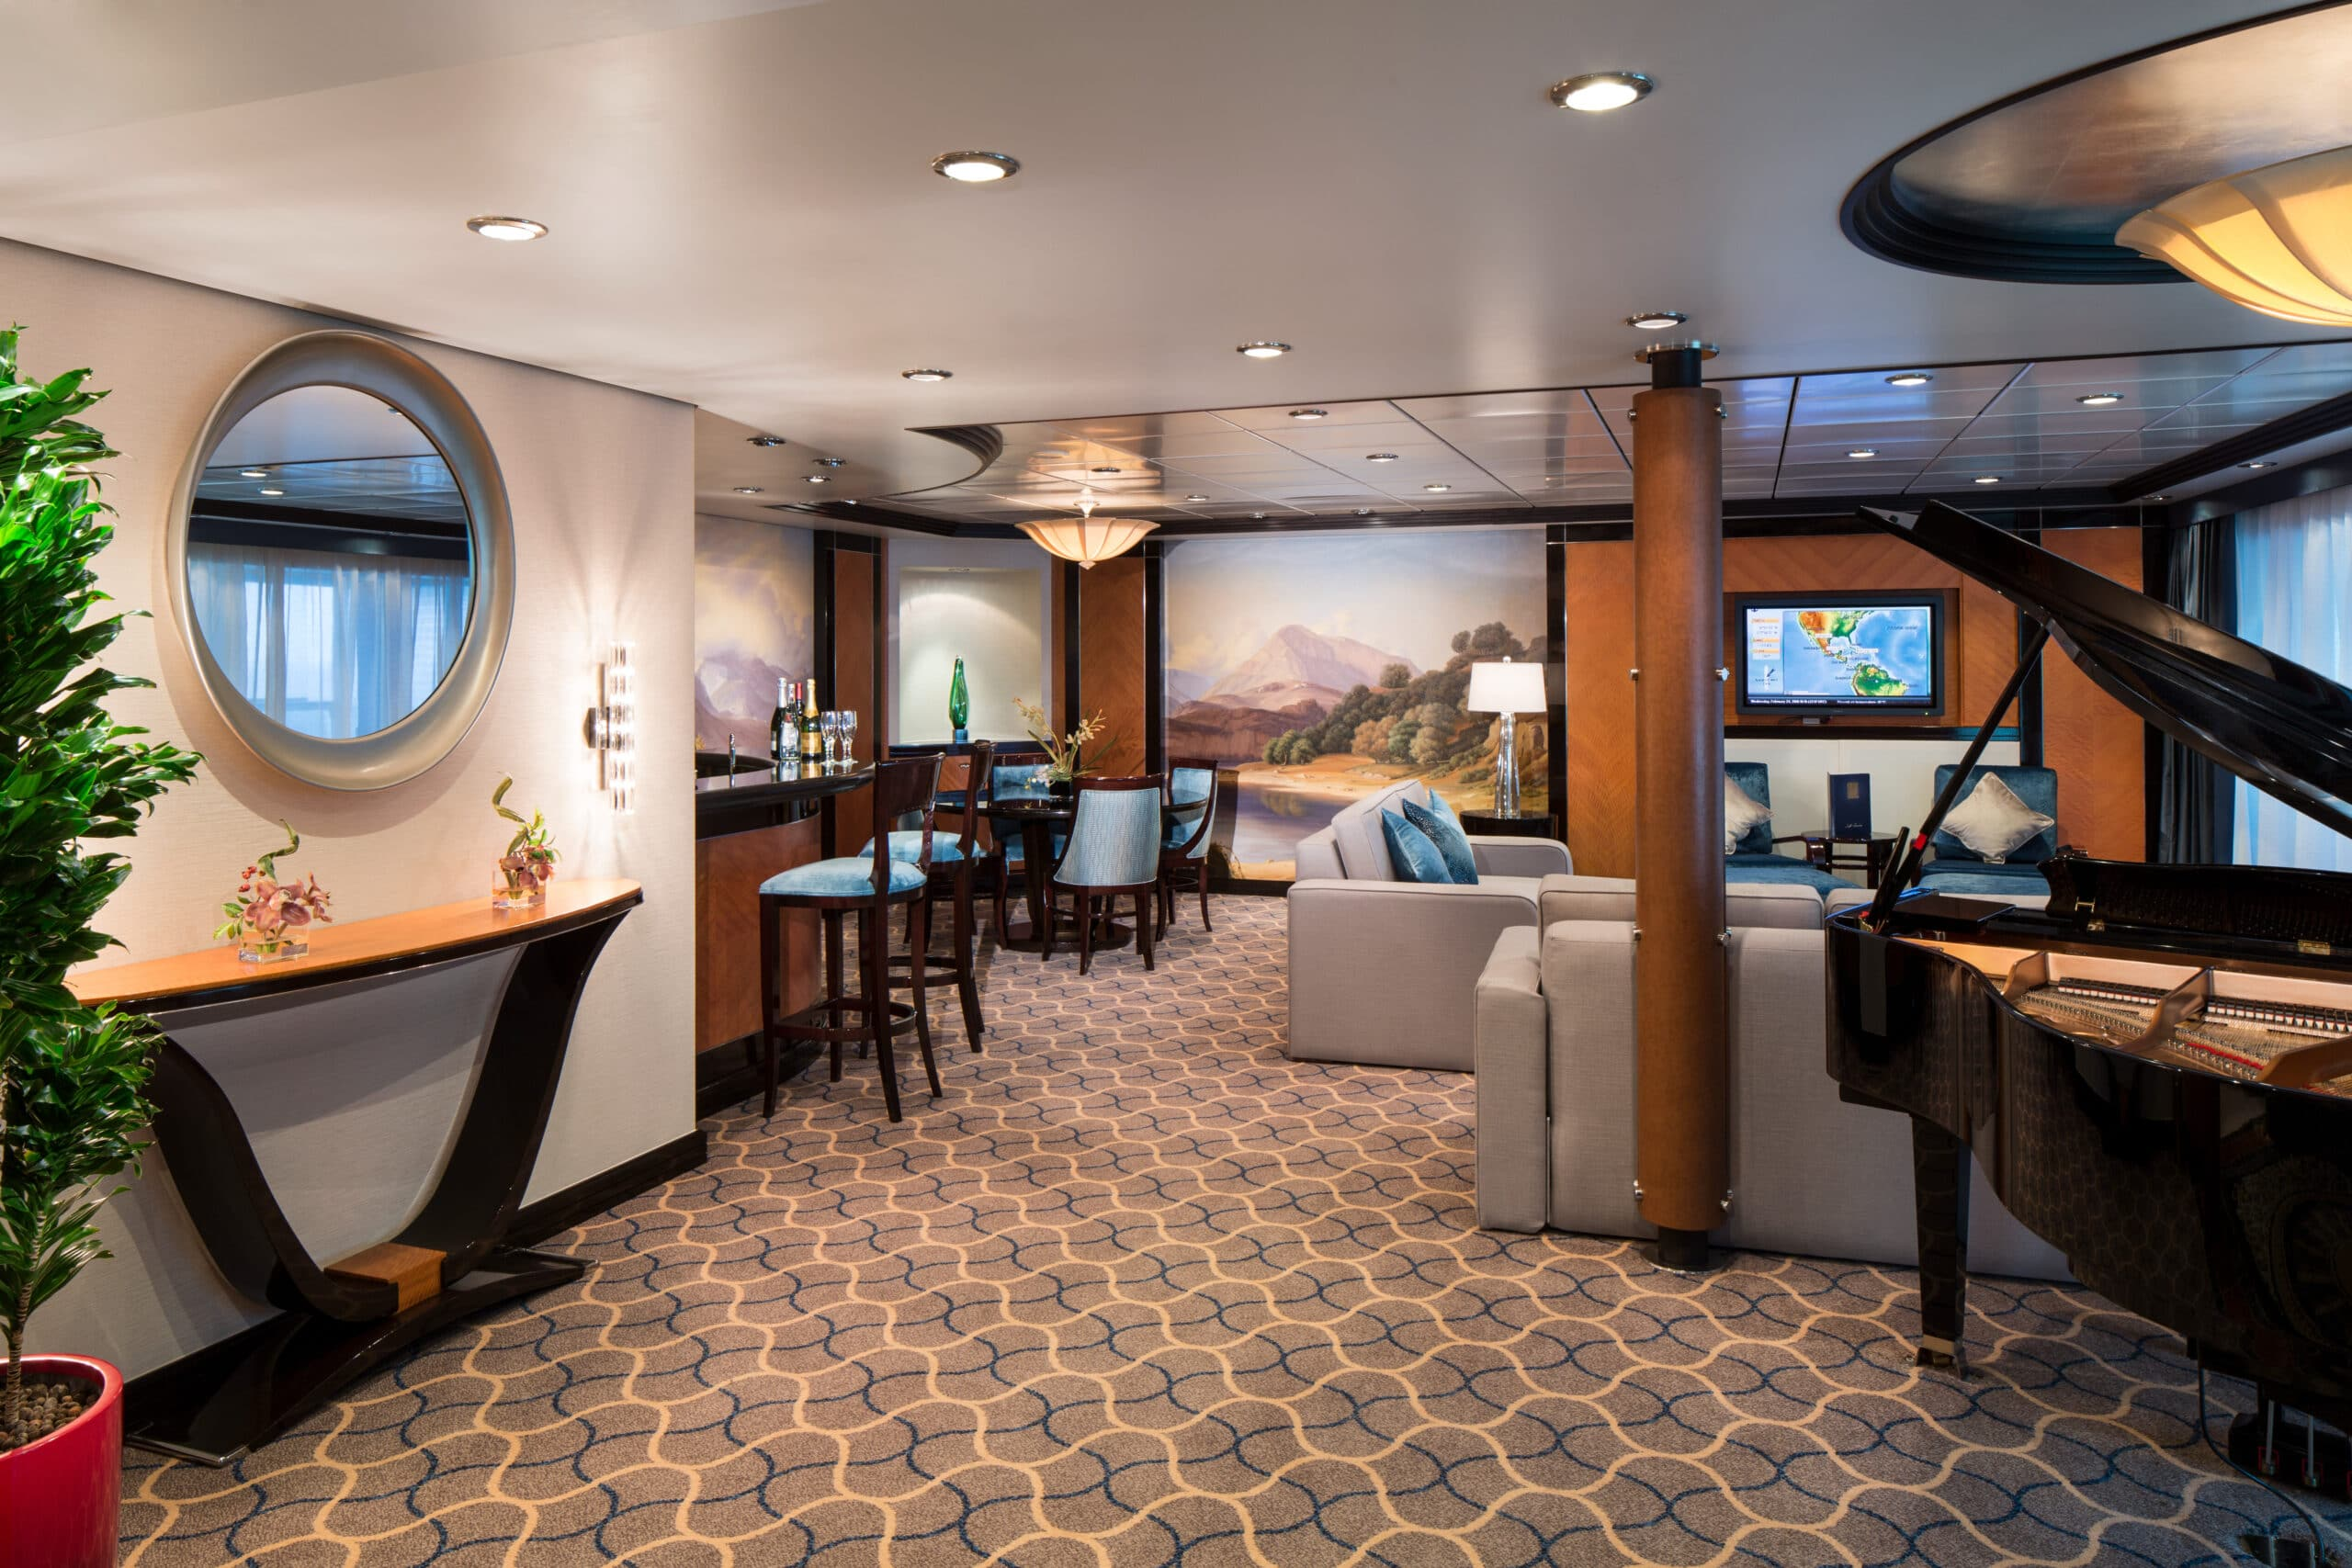 Royal-Caribbean-International-Freedom-of-the-Seas-Liberty-of-the Seas-Independence-of-the-seas-schip-cruiseschip-categorie RS-Royal Suite